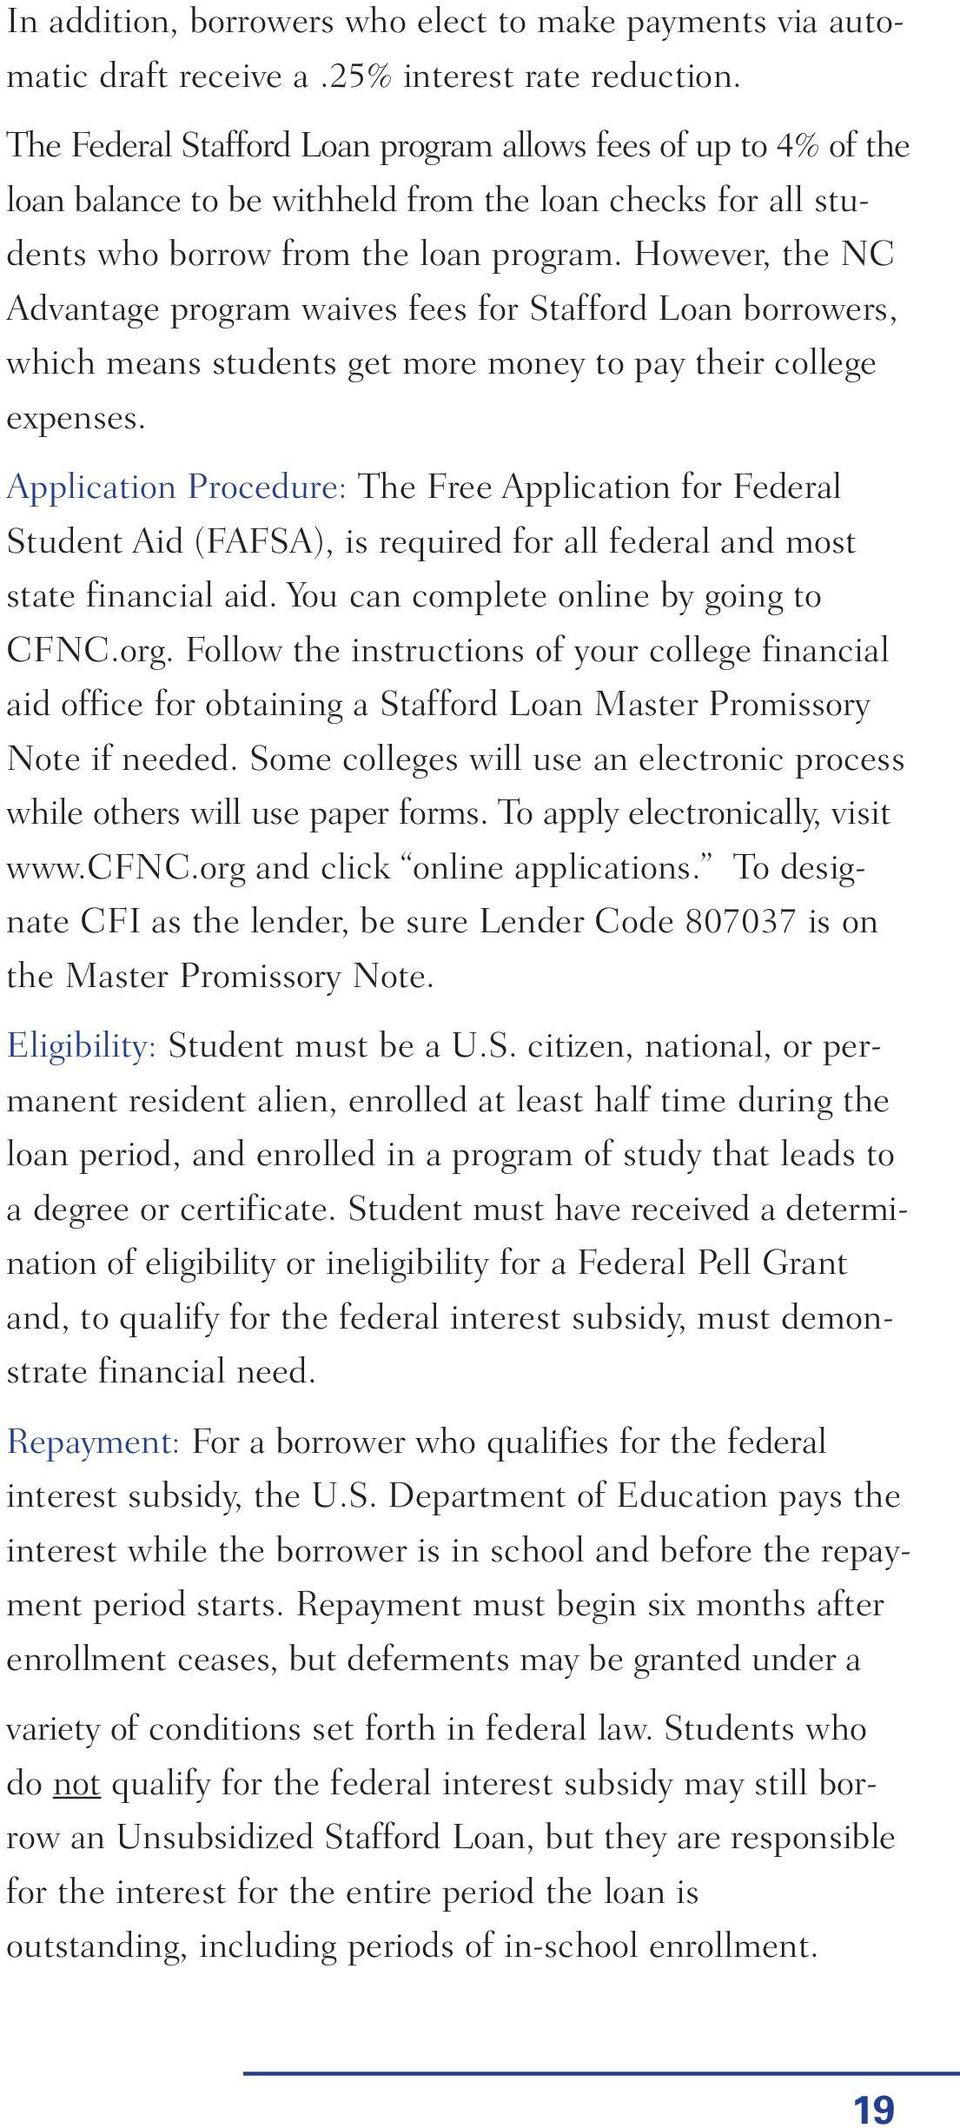 However, the NC Advantage program waives fees for Stafford Loan borrowers, which means students get more money to pay their college expenses.